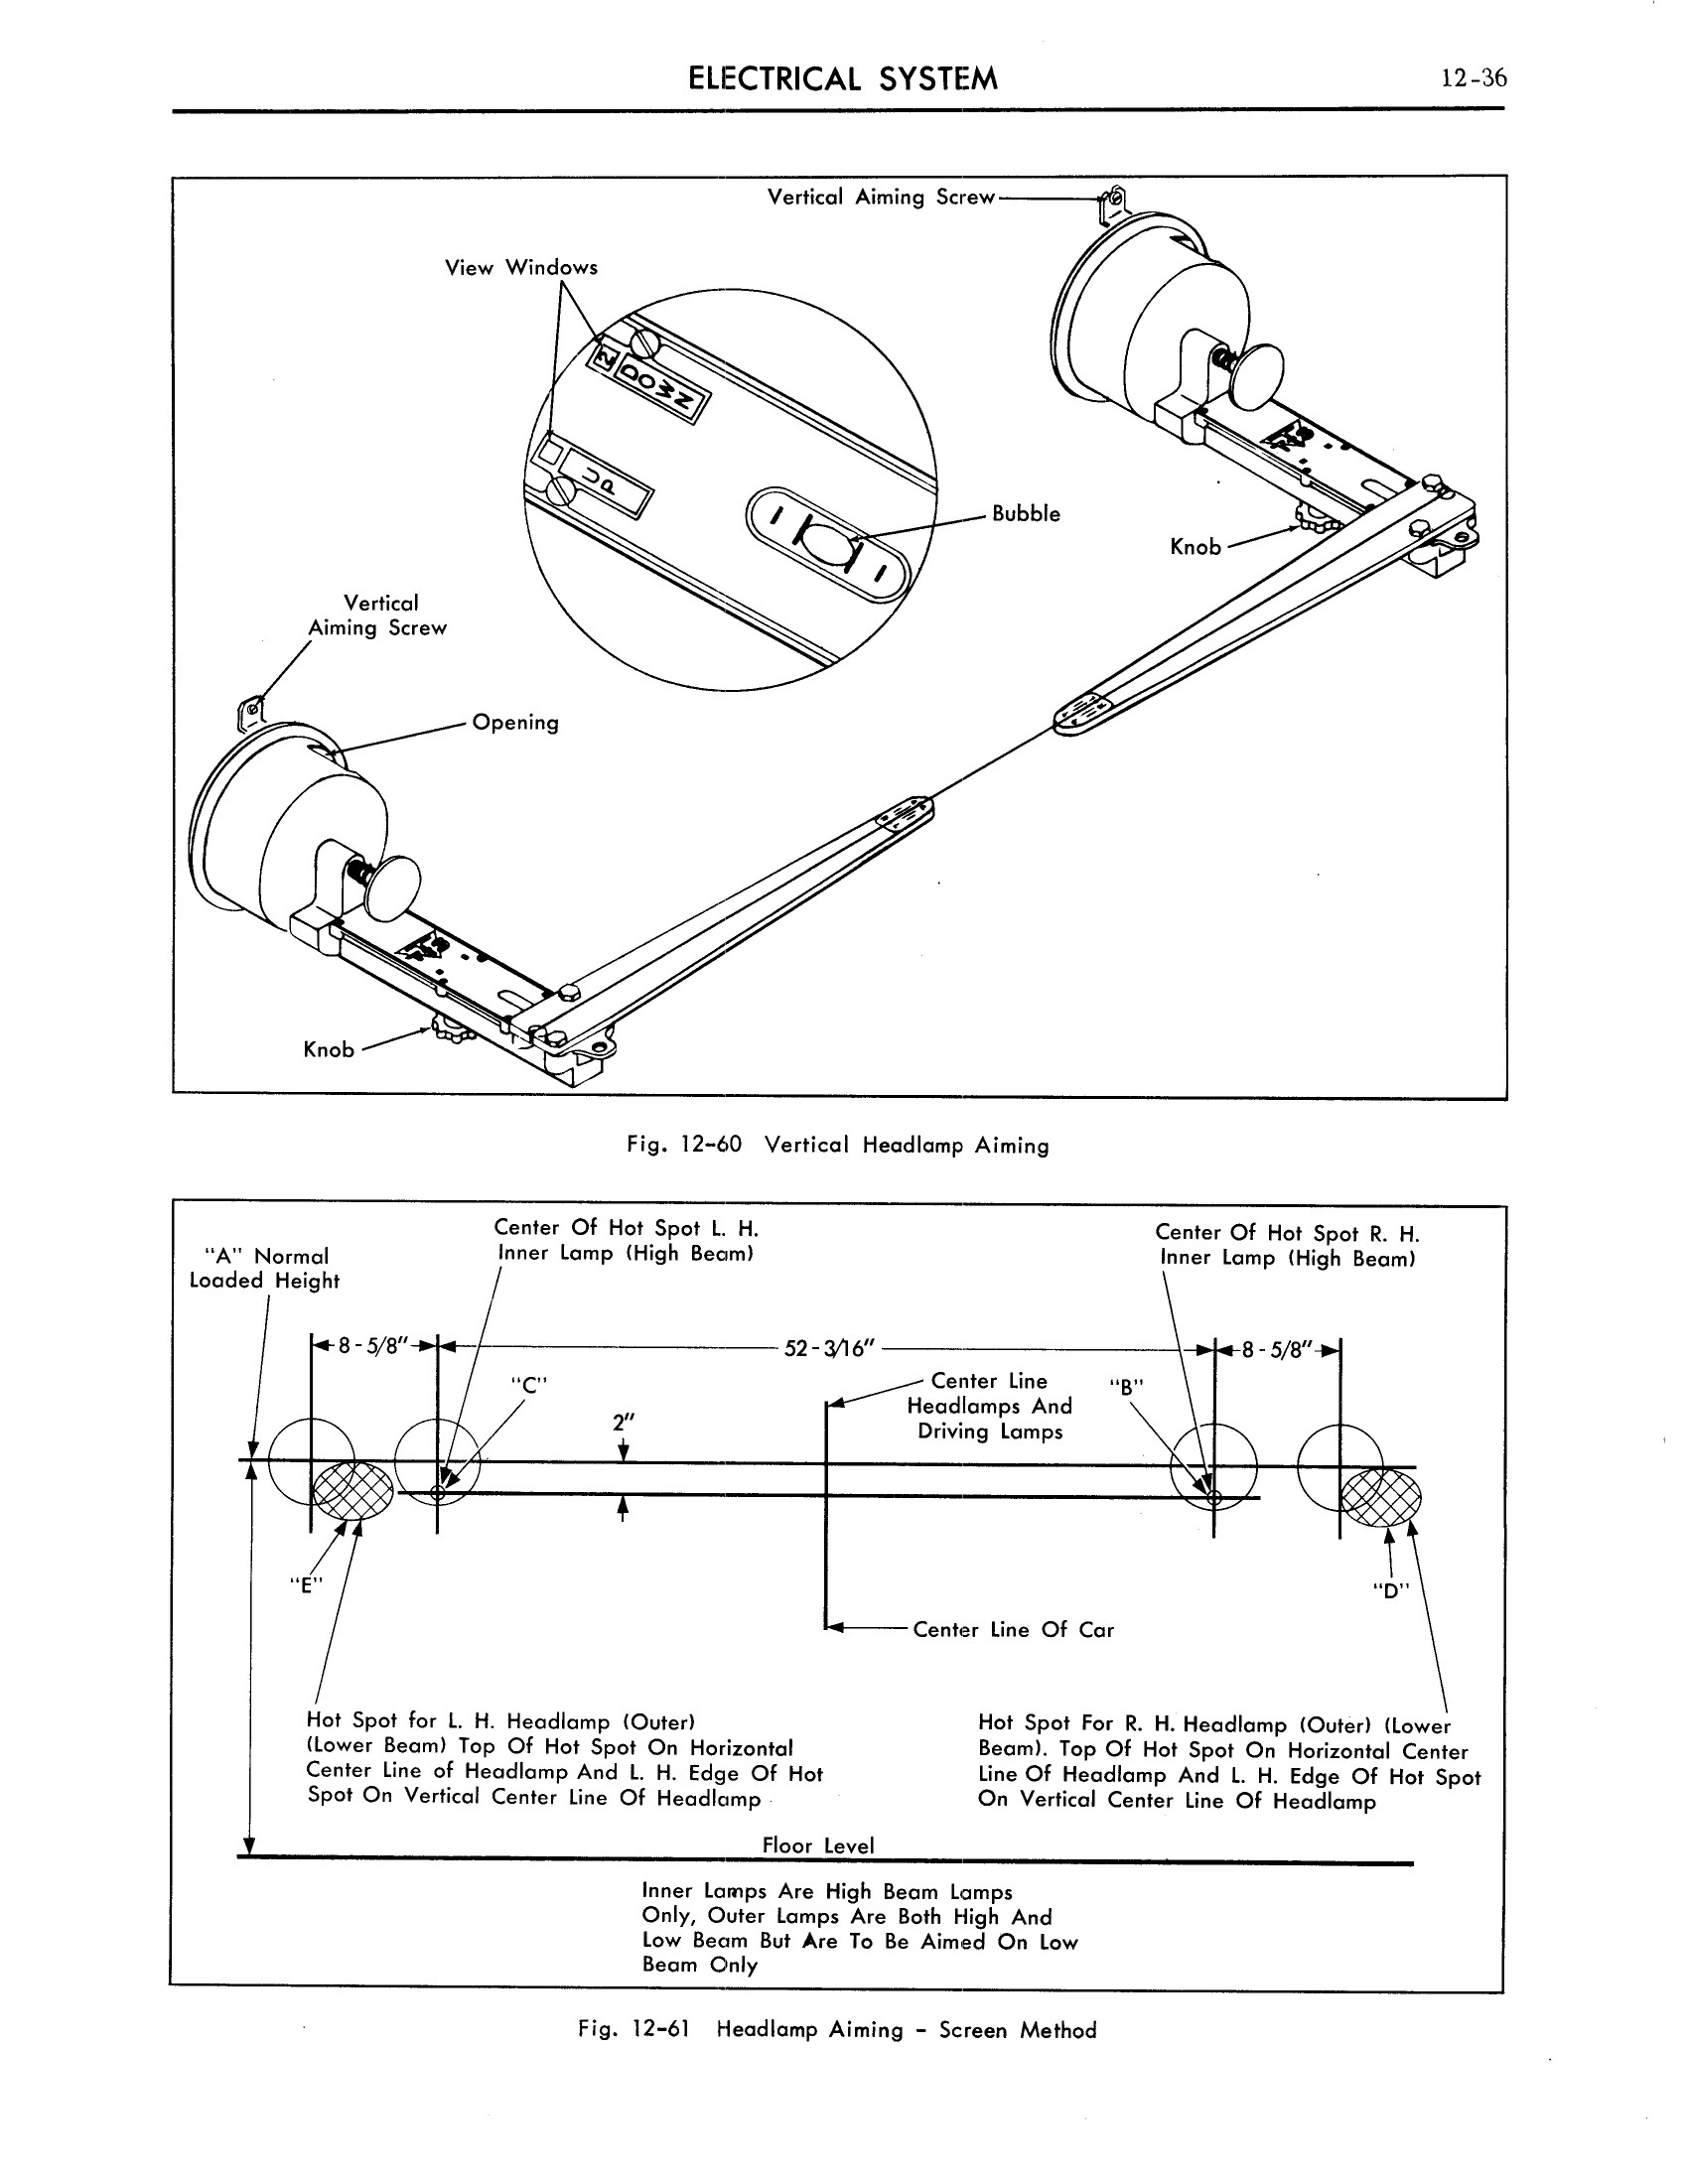 1959 Cadillac Shop Manual- Electrical System Page 36 of 49